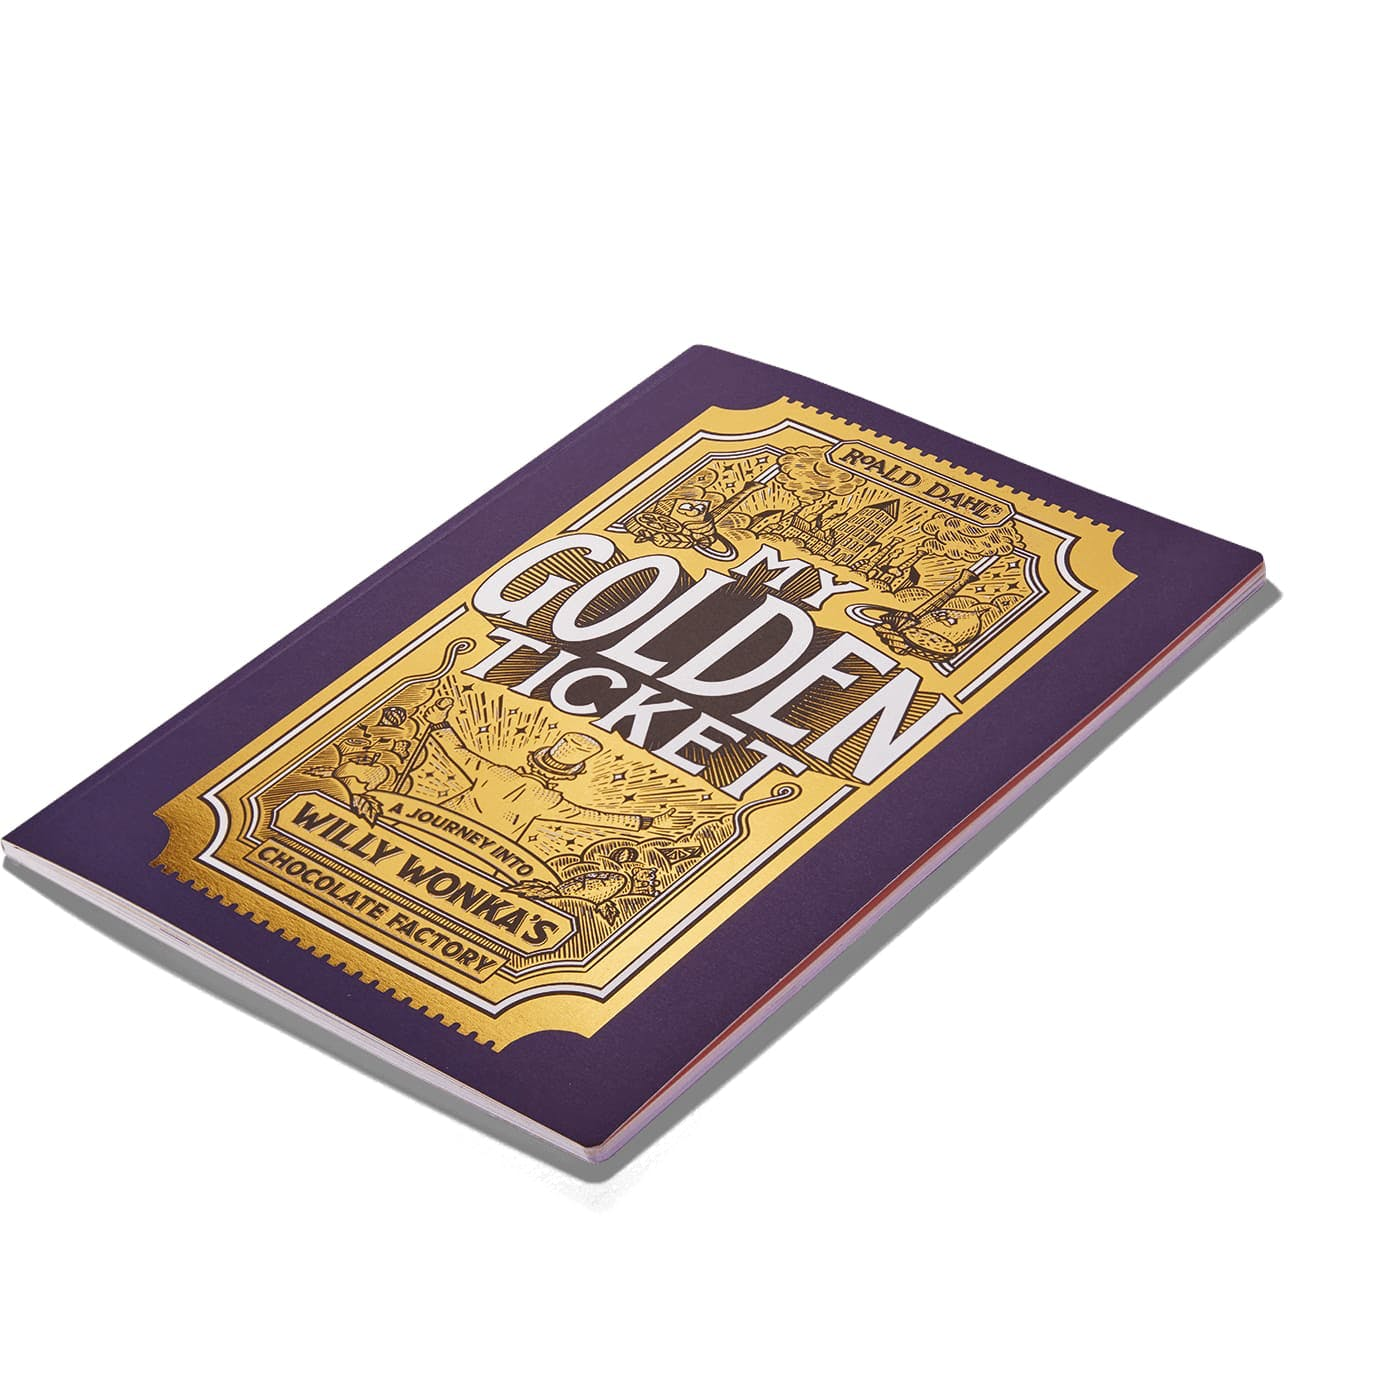 My Golden Ticket - Product Specification 1 of the book dimensions